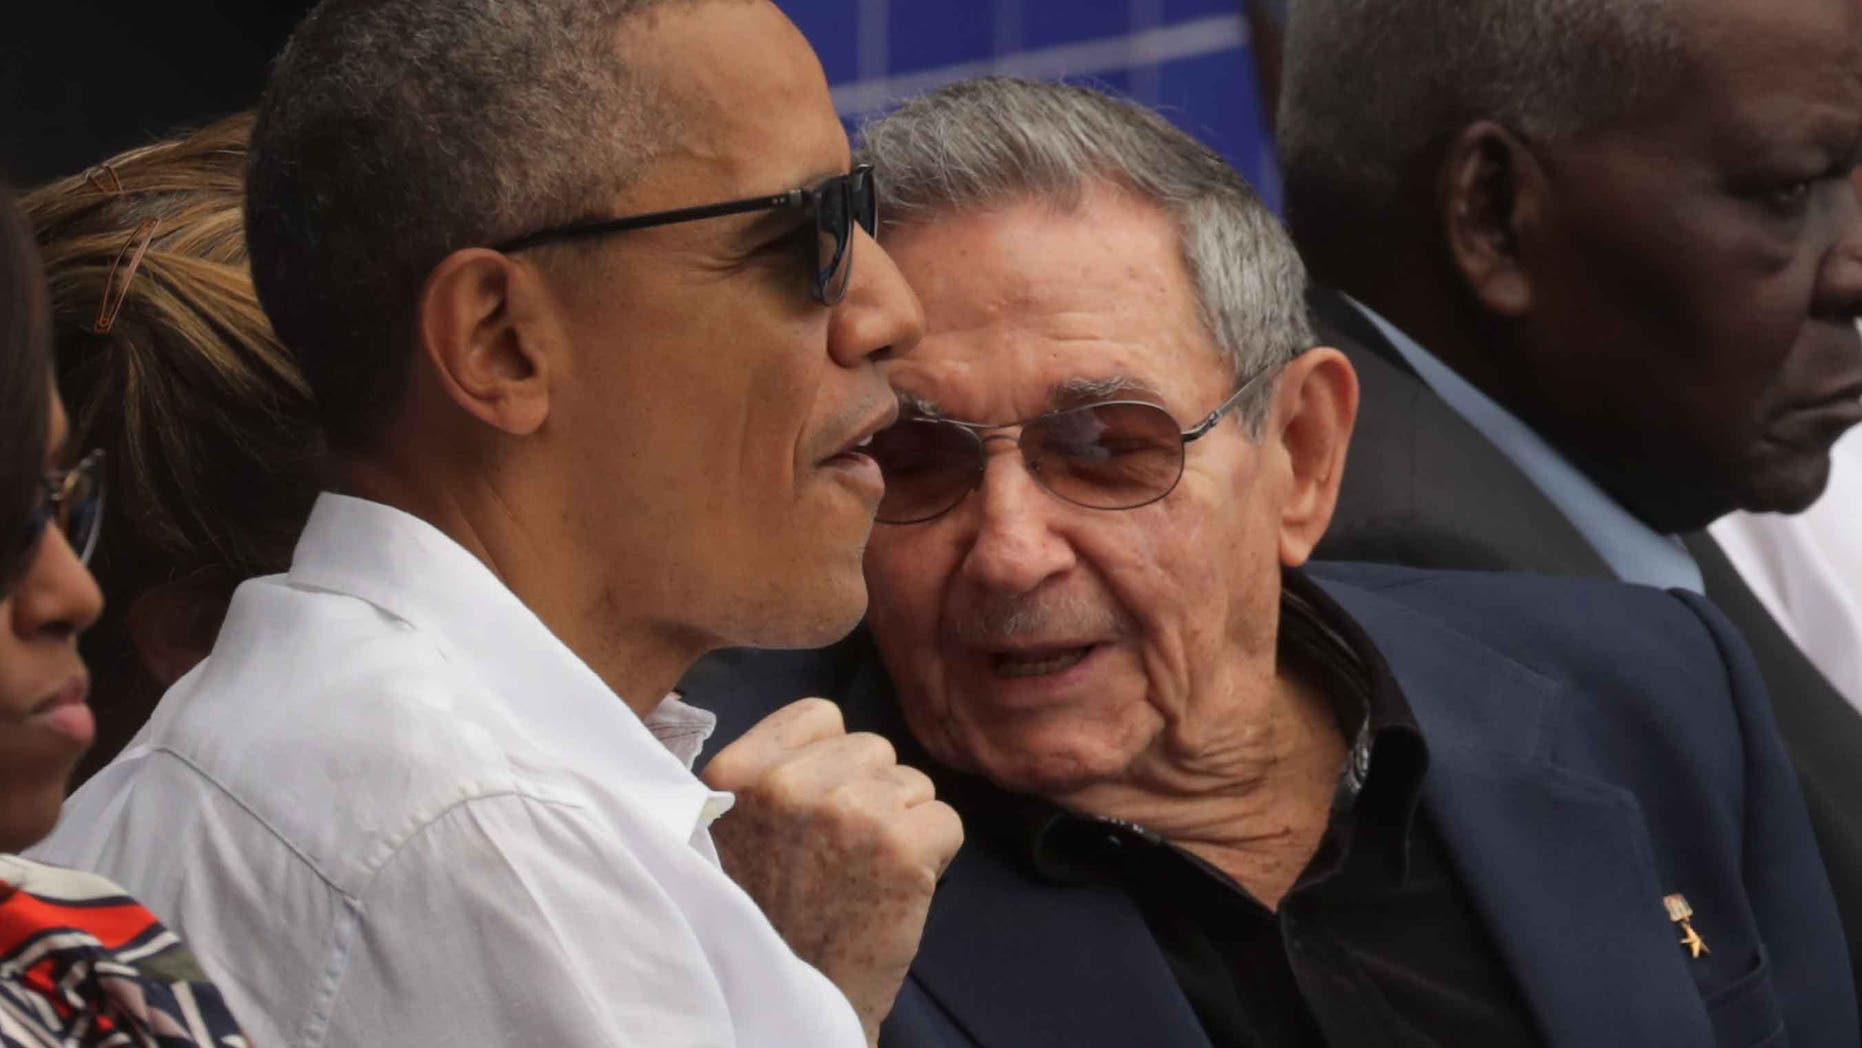 HAVANA, CUBA - MARCH 22:  U.S. President Barack Obama (L) and Cuban President Raul Castro talk during an exposition game between the Cuban national baseball team and Major League Baseball's Tampa Bay Devil Rays at the Estado Latinoamericano March 22, 2016 in Havana, Cuba. This is the first time a sittng president has visited Cuba in 88 years.  (Photo by Chip Somodevilla/Getty Images)